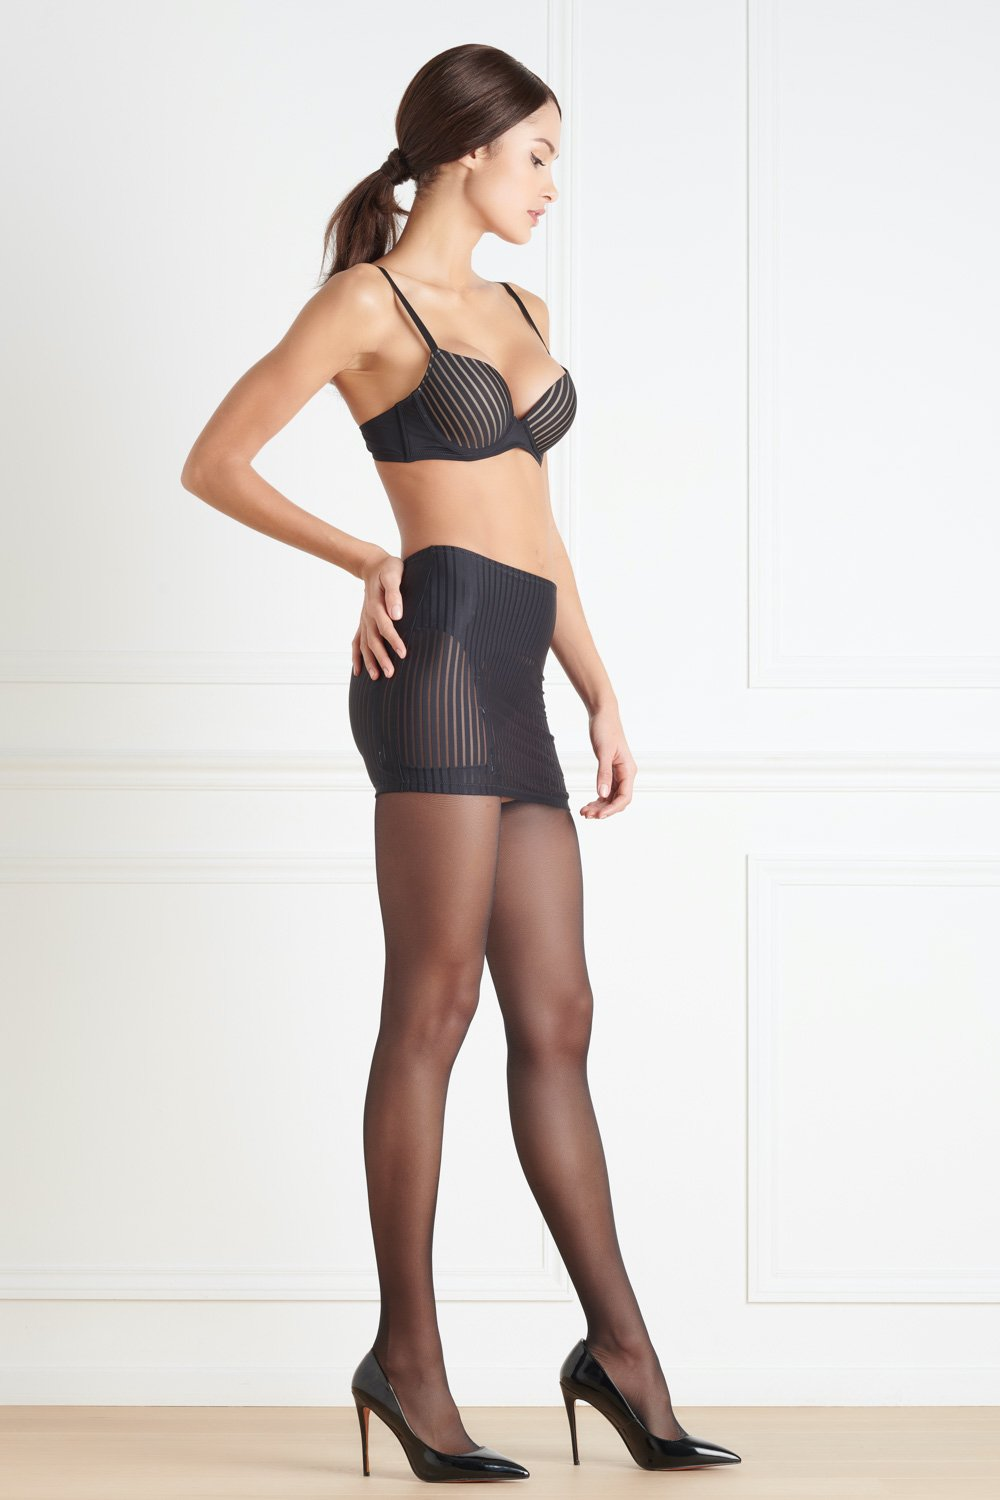 Maison Close Bande à Part Skirt with Suspenders - The Hosiery Box